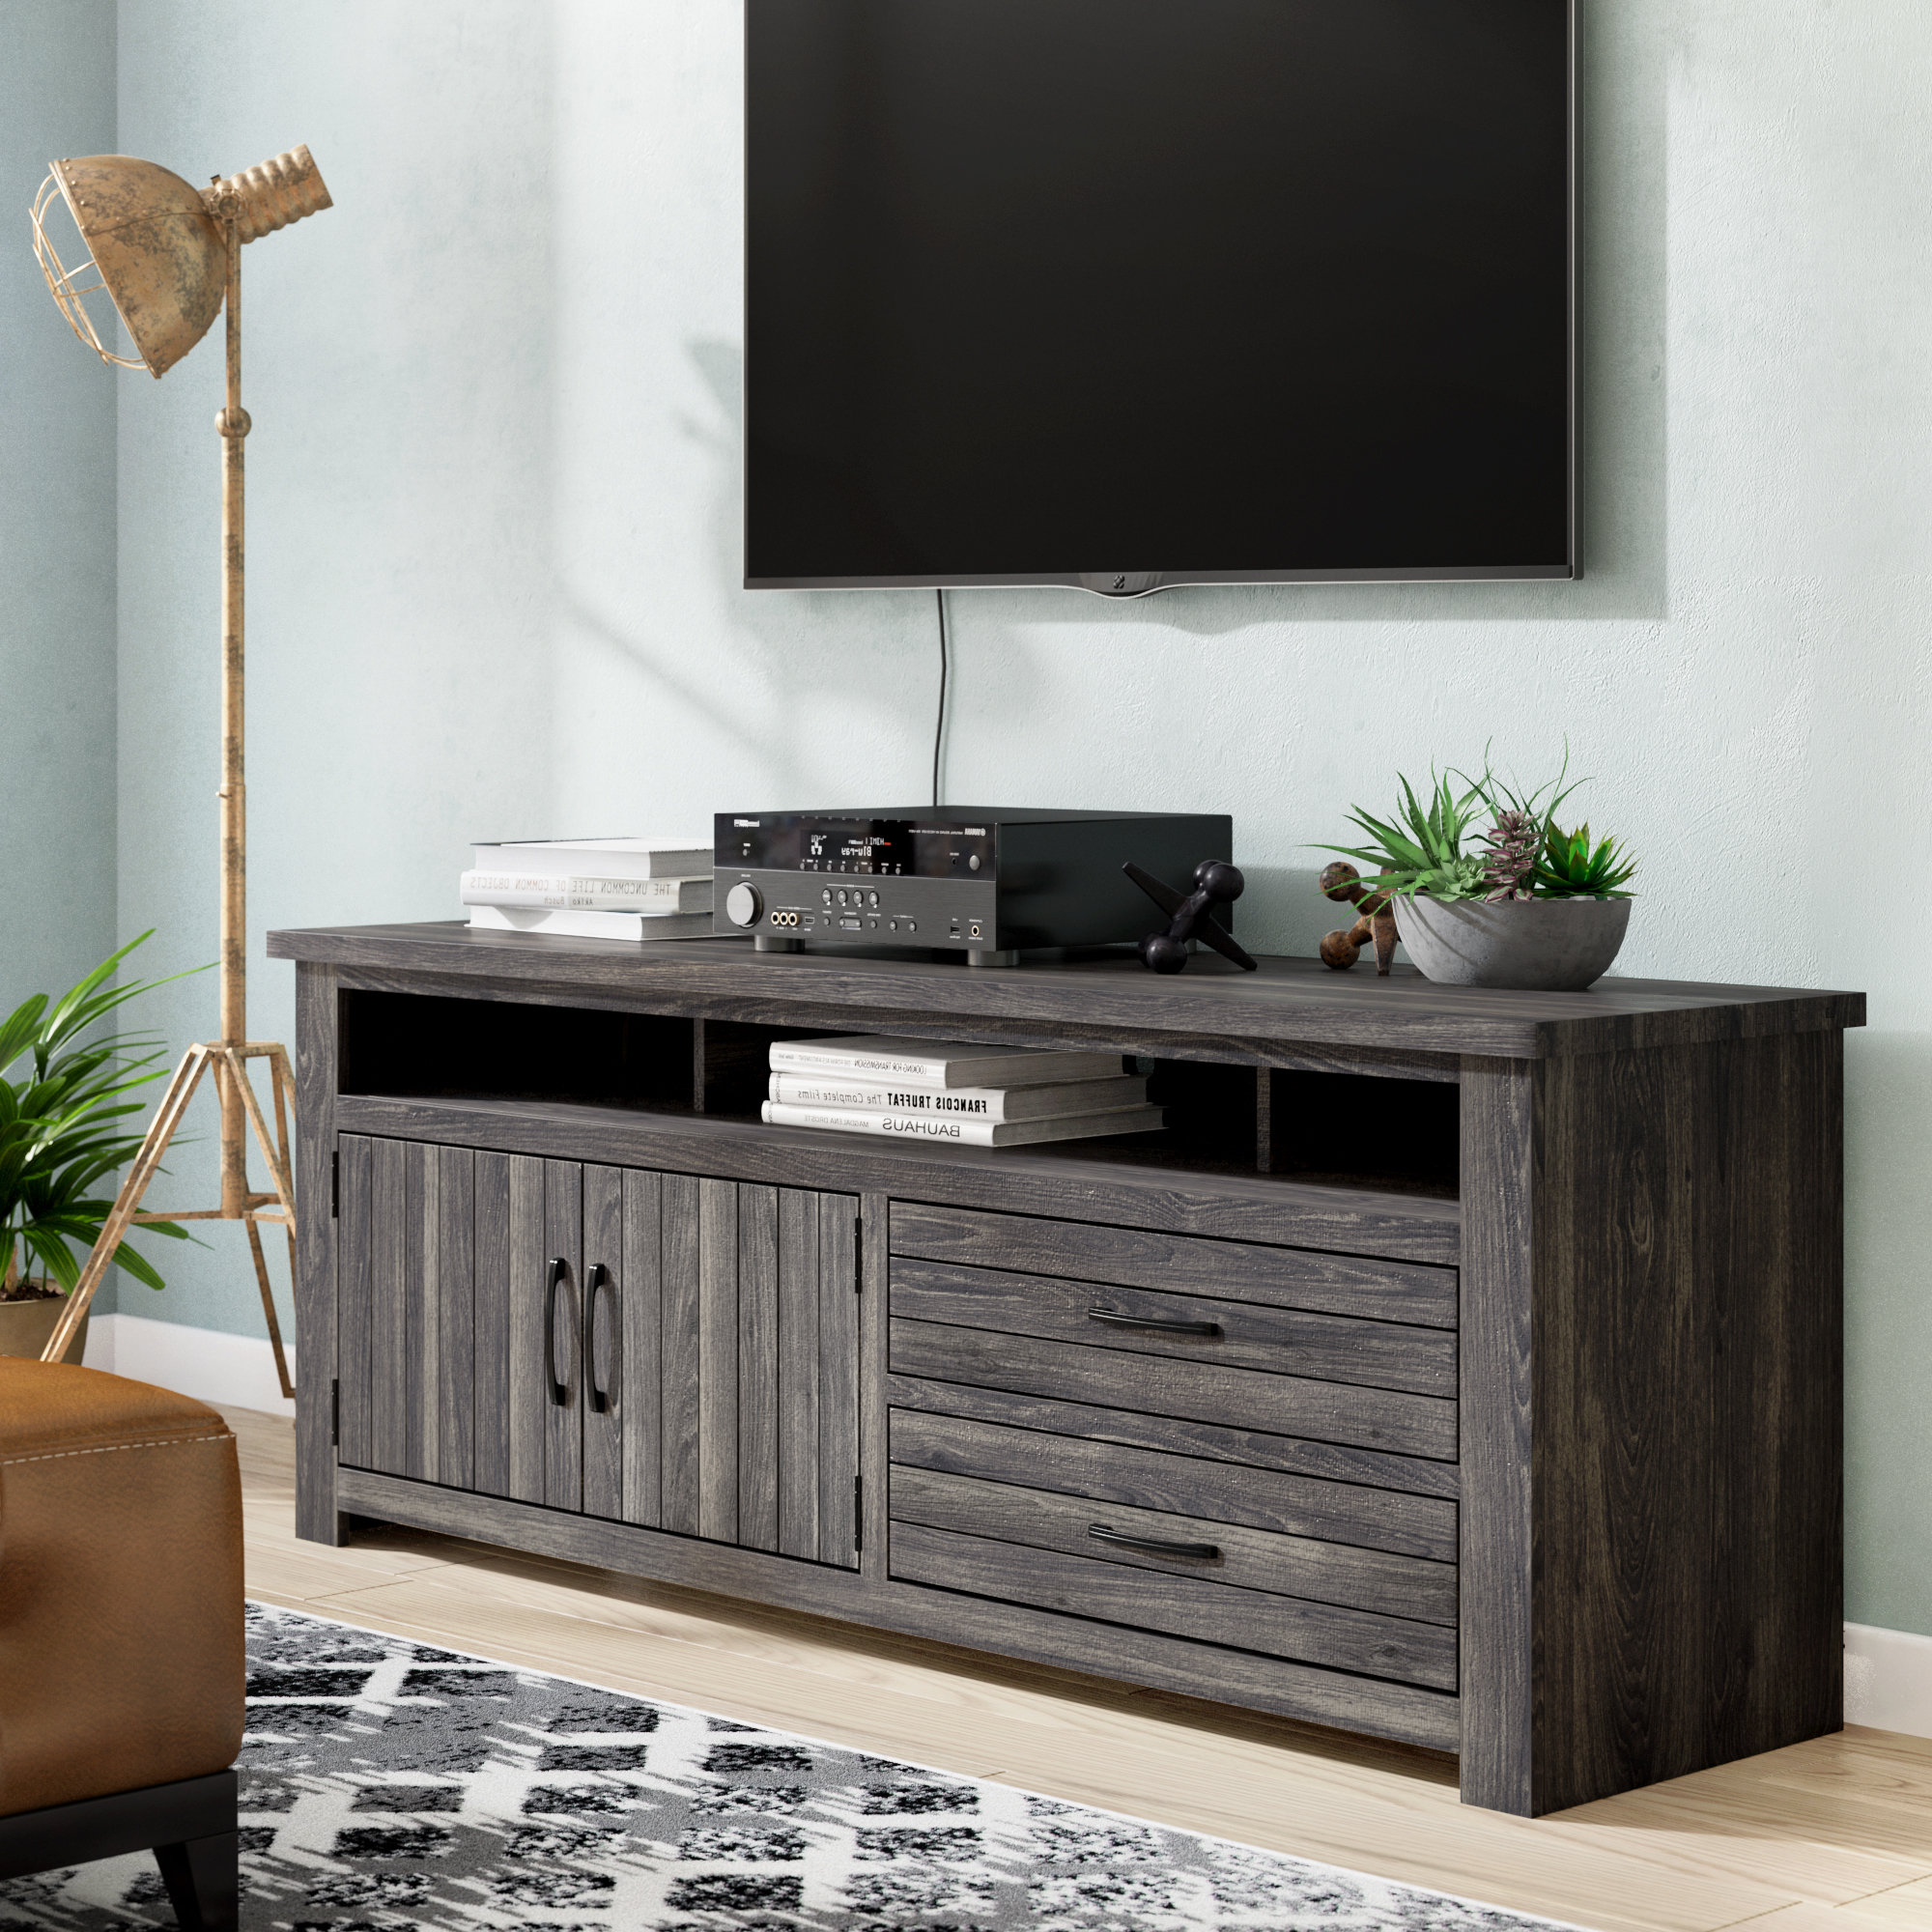 Joss & Main Regarding Annabelle Black 70 Inch Tv Stands (Gallery 18 of 20)